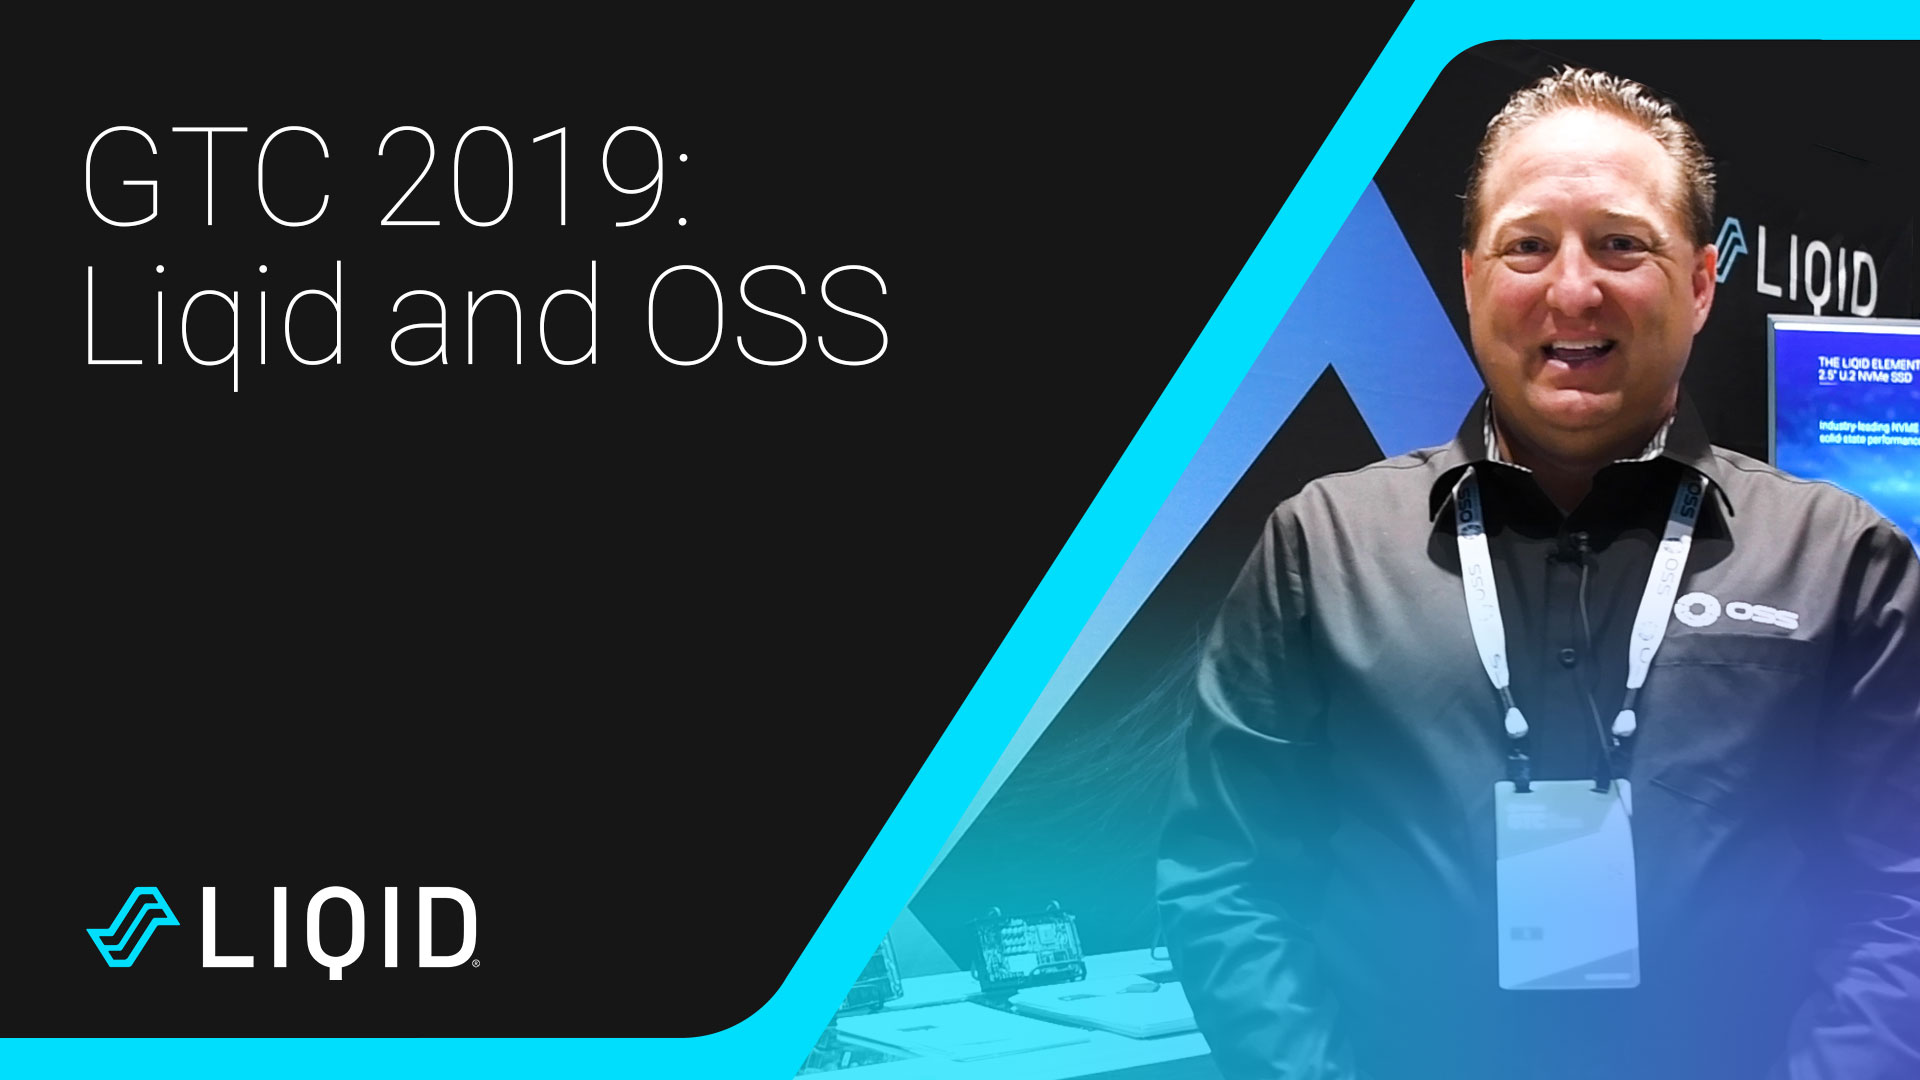 Liqid, the leader in composable infrastructure, and OSS at GTC 2019